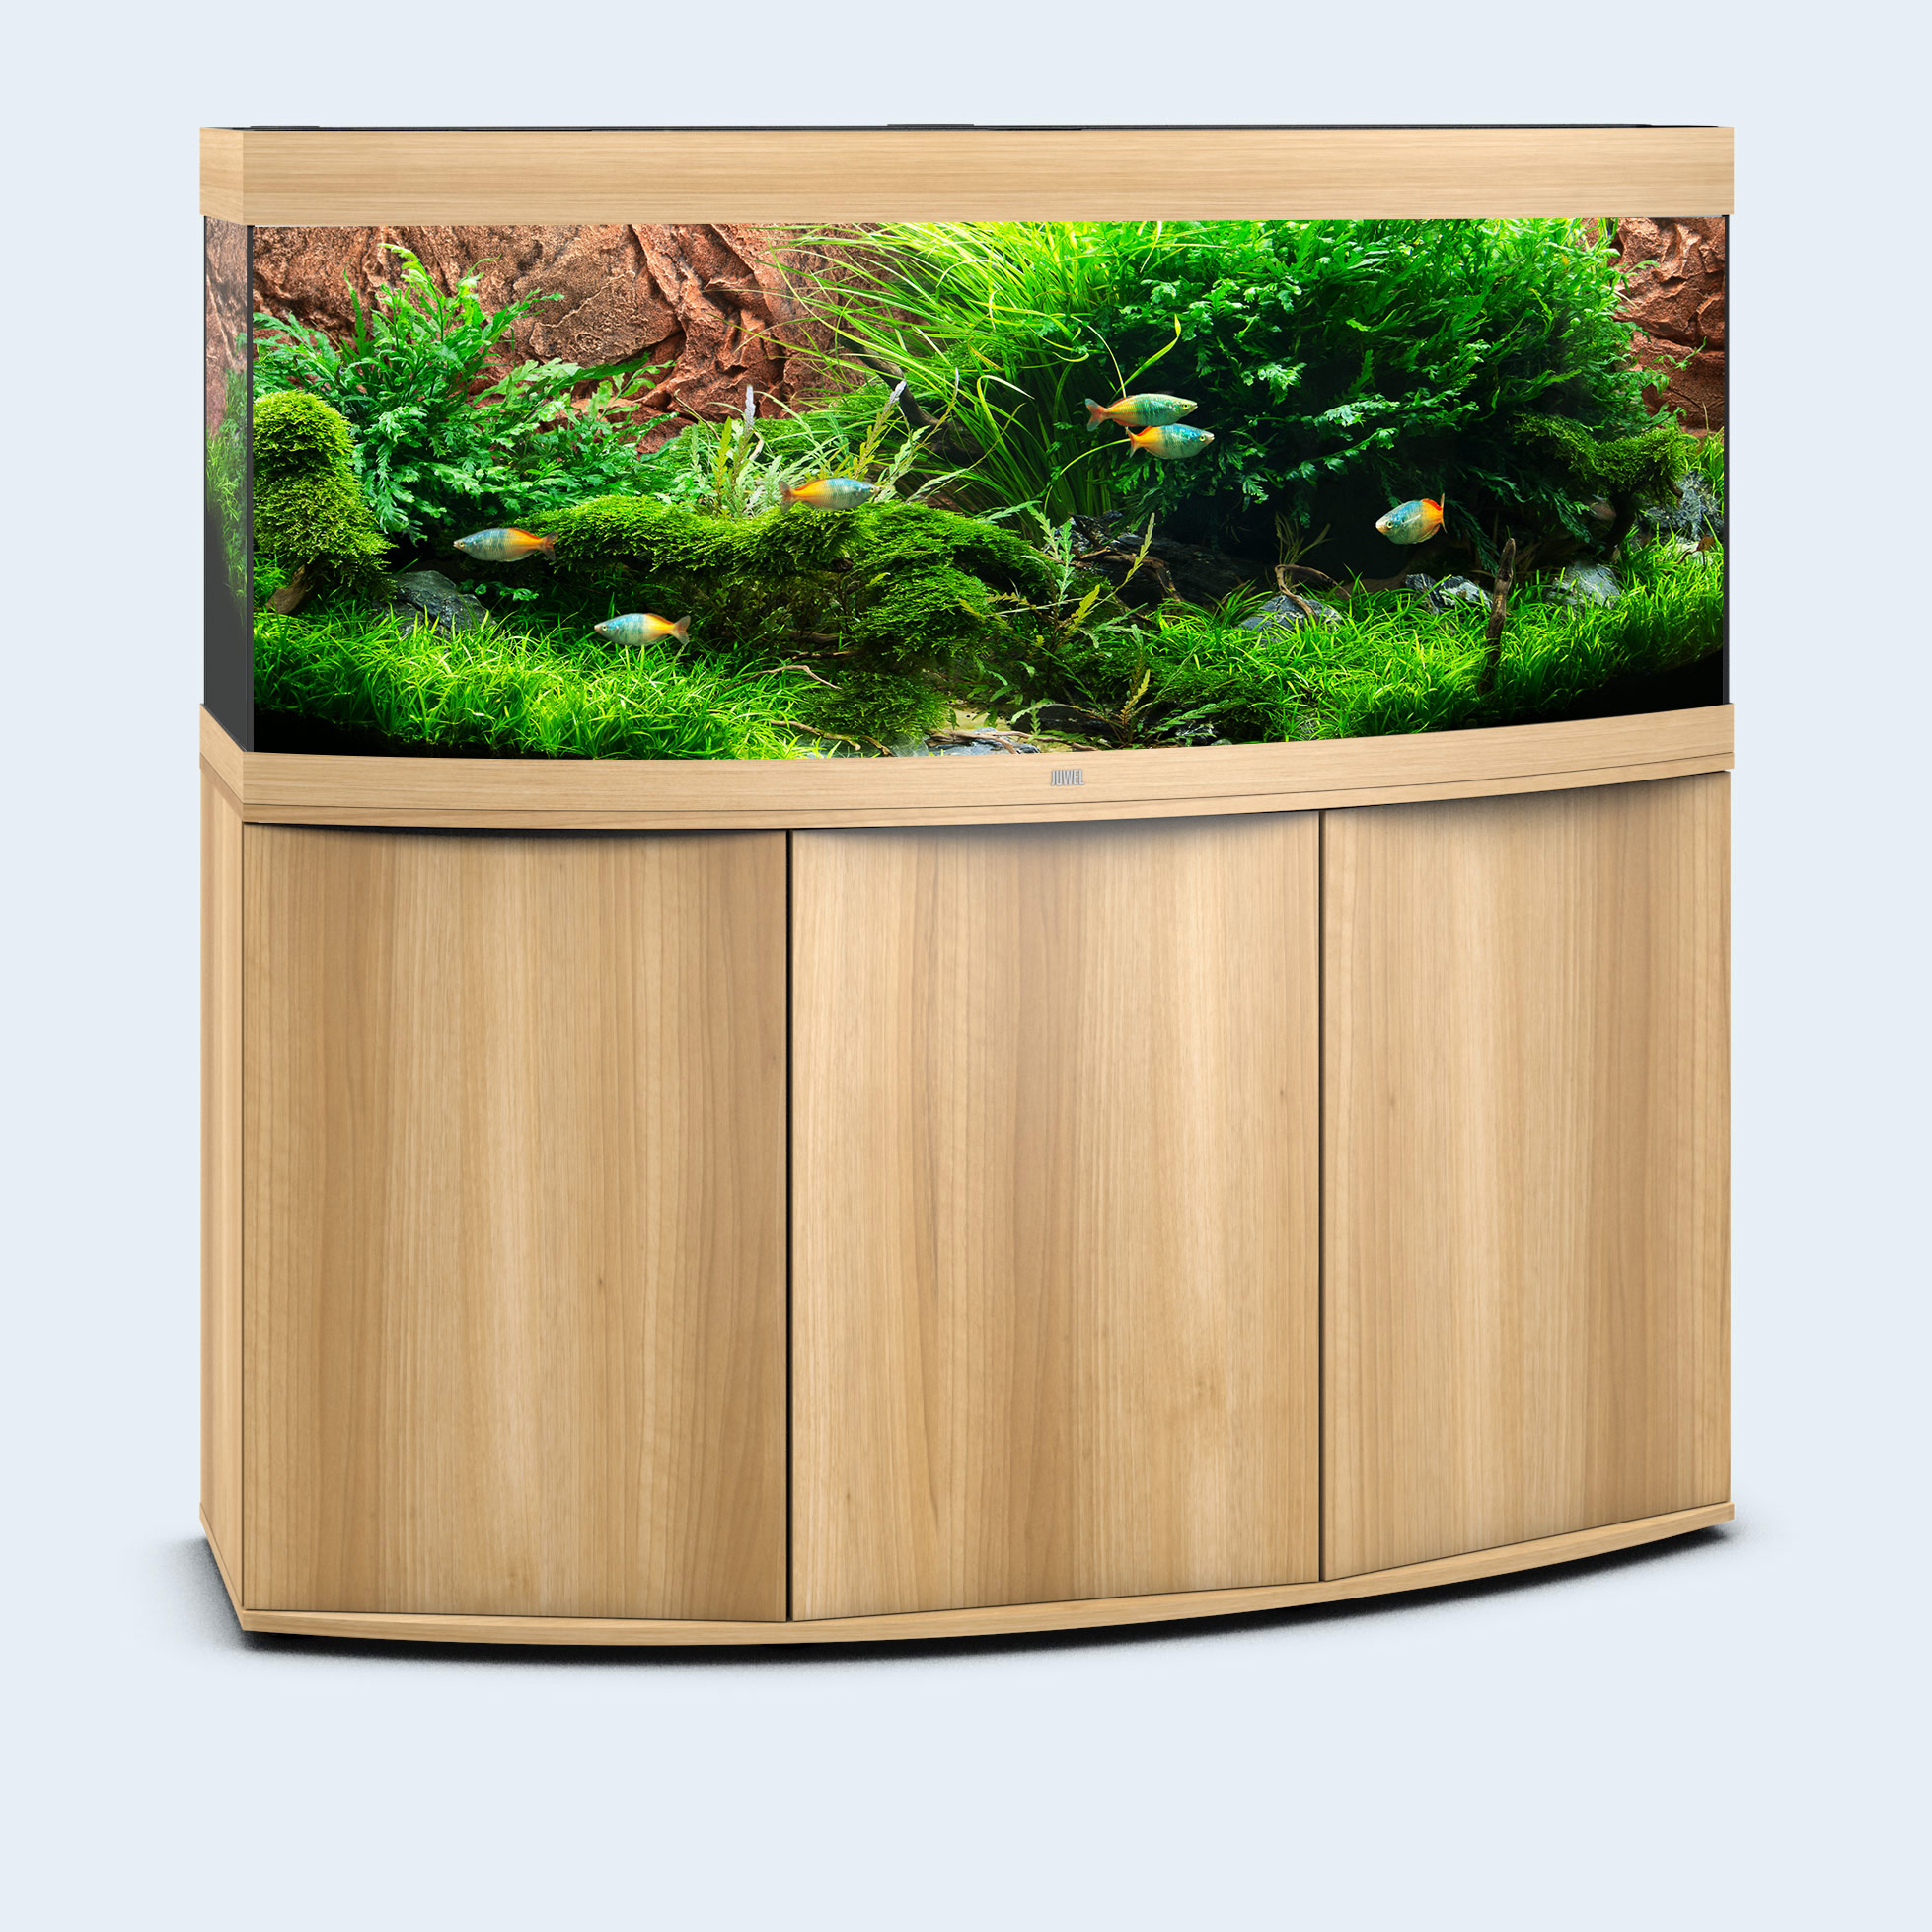 Juwel Aquarium | Vision 450 LED